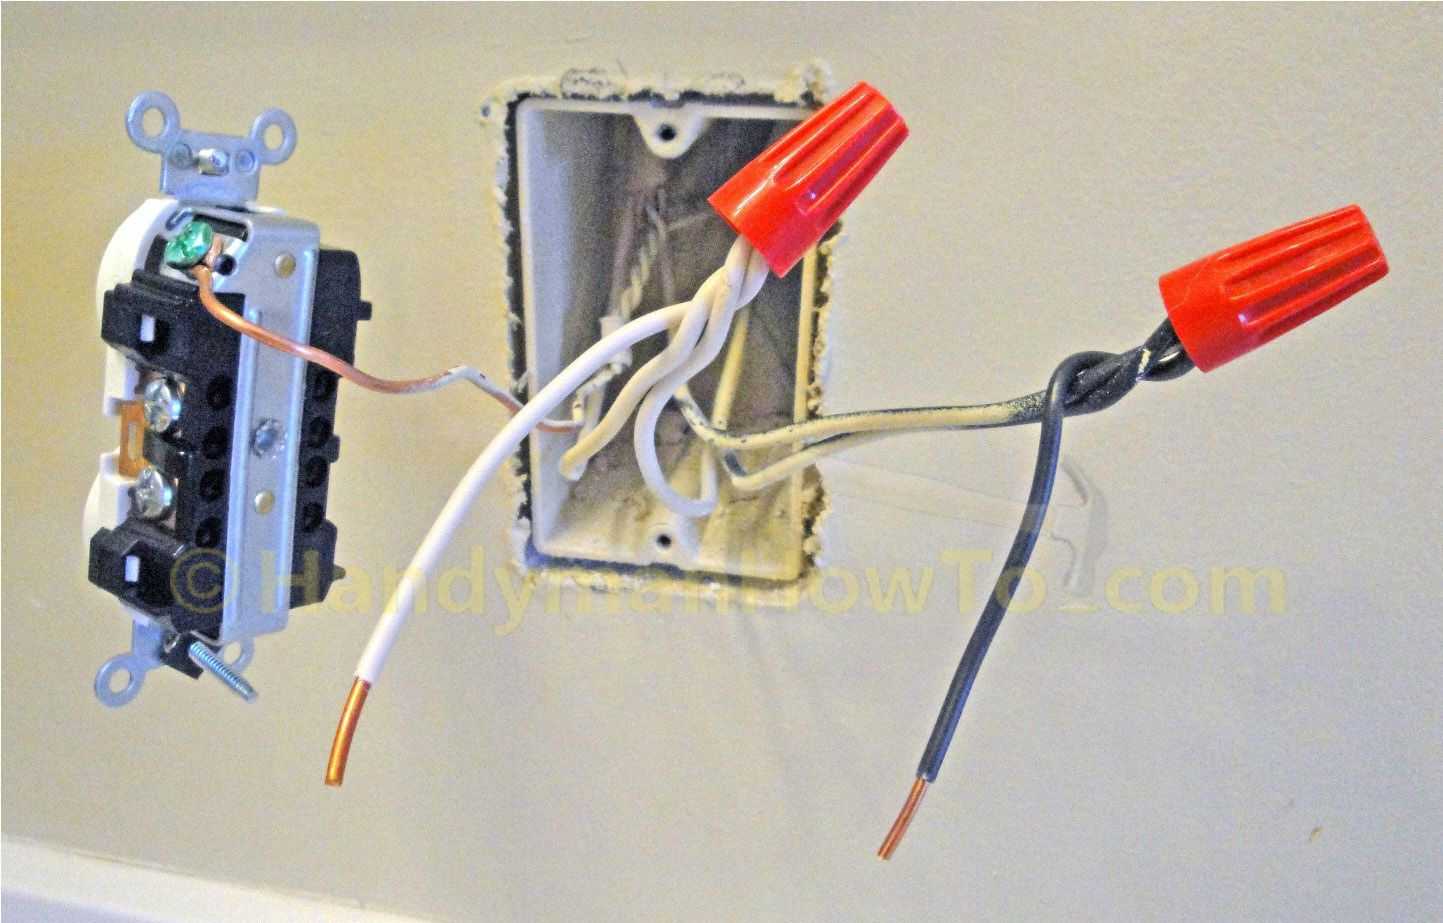 backwiring an electrical outlet in parallel with pigtail connections rh pinterest ie Installing a 4 Wire Pigtail wiring receptacles pigtail or not